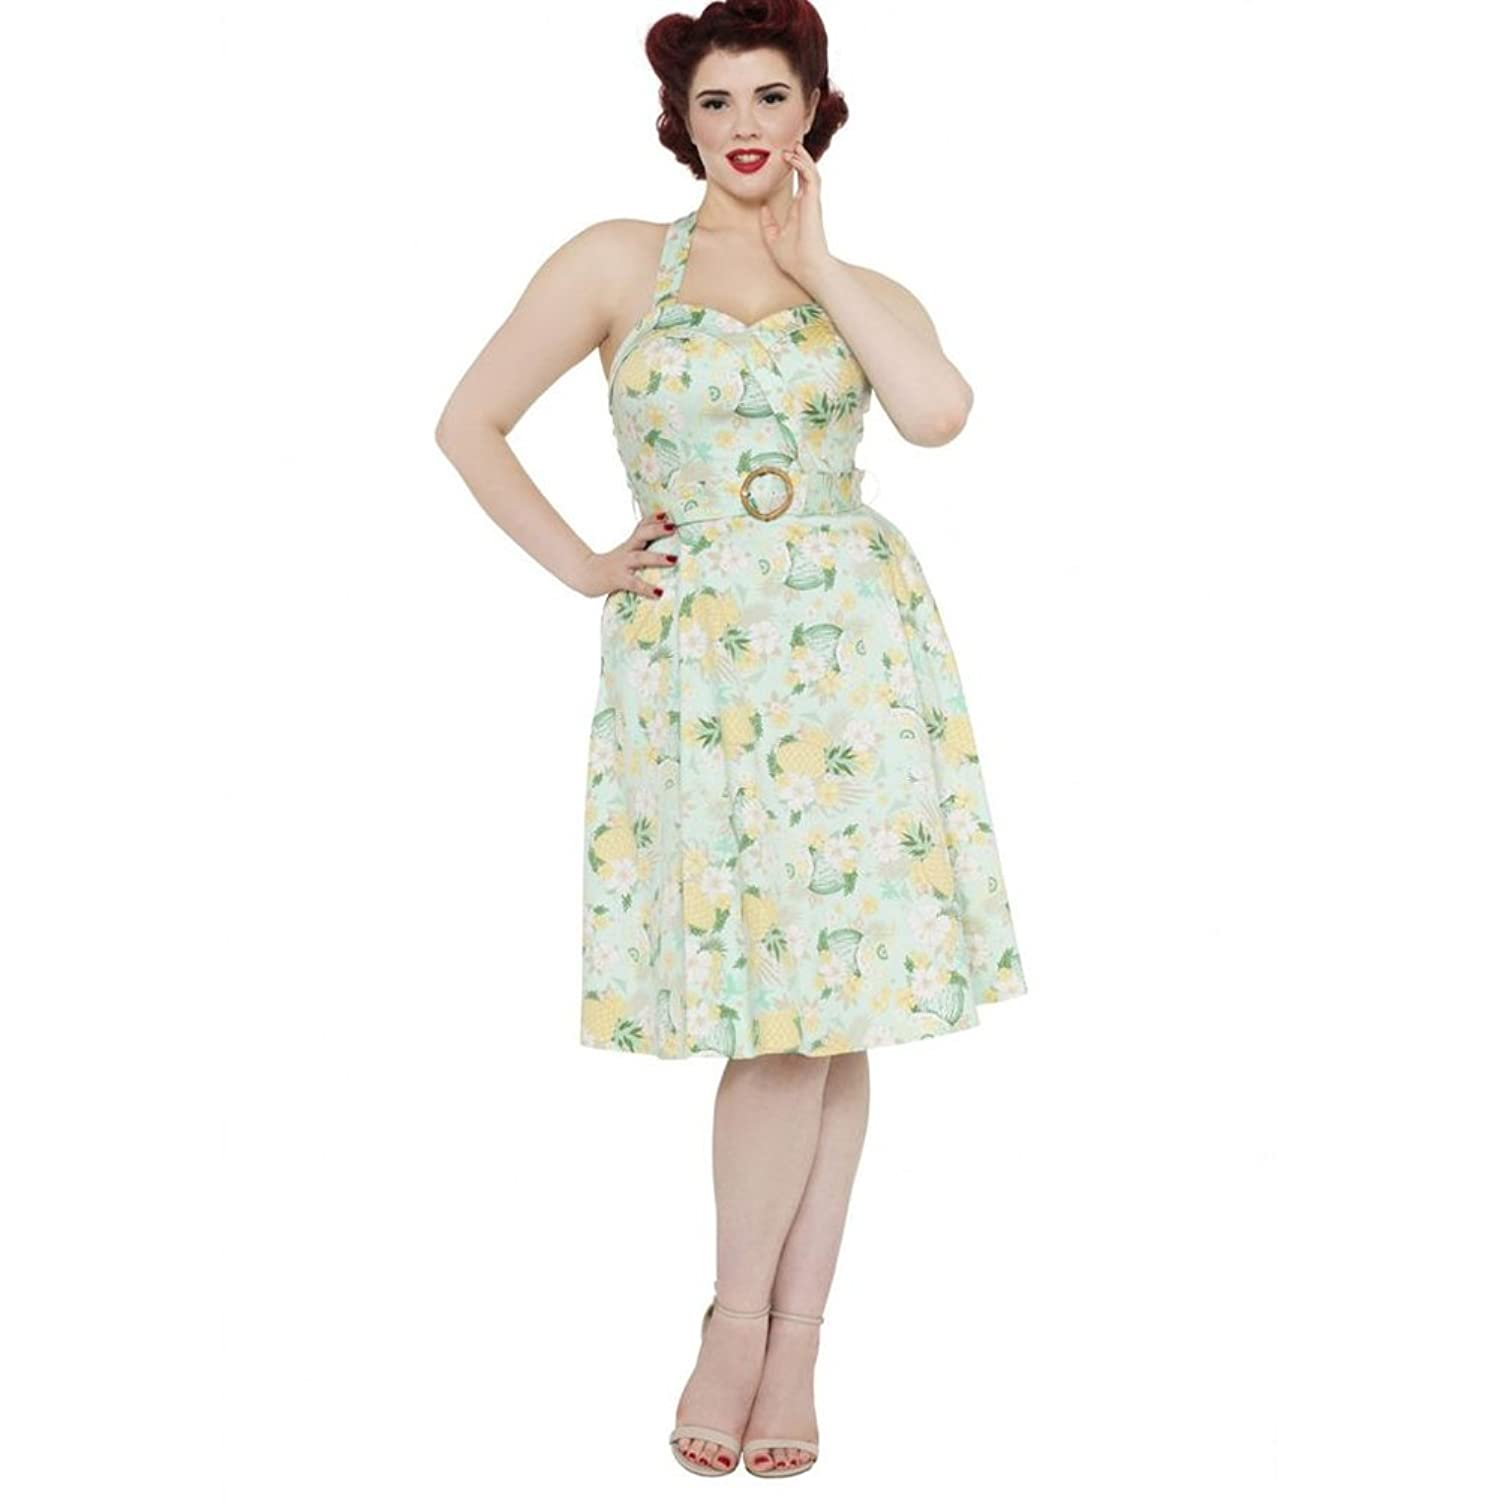 1950s Dresses, 50s Dresses | 1950s Style Dresses Voodoo Vixen Womens Layla Tropical Dream Flare Dress Green $75.70 AT vintagedancer.com